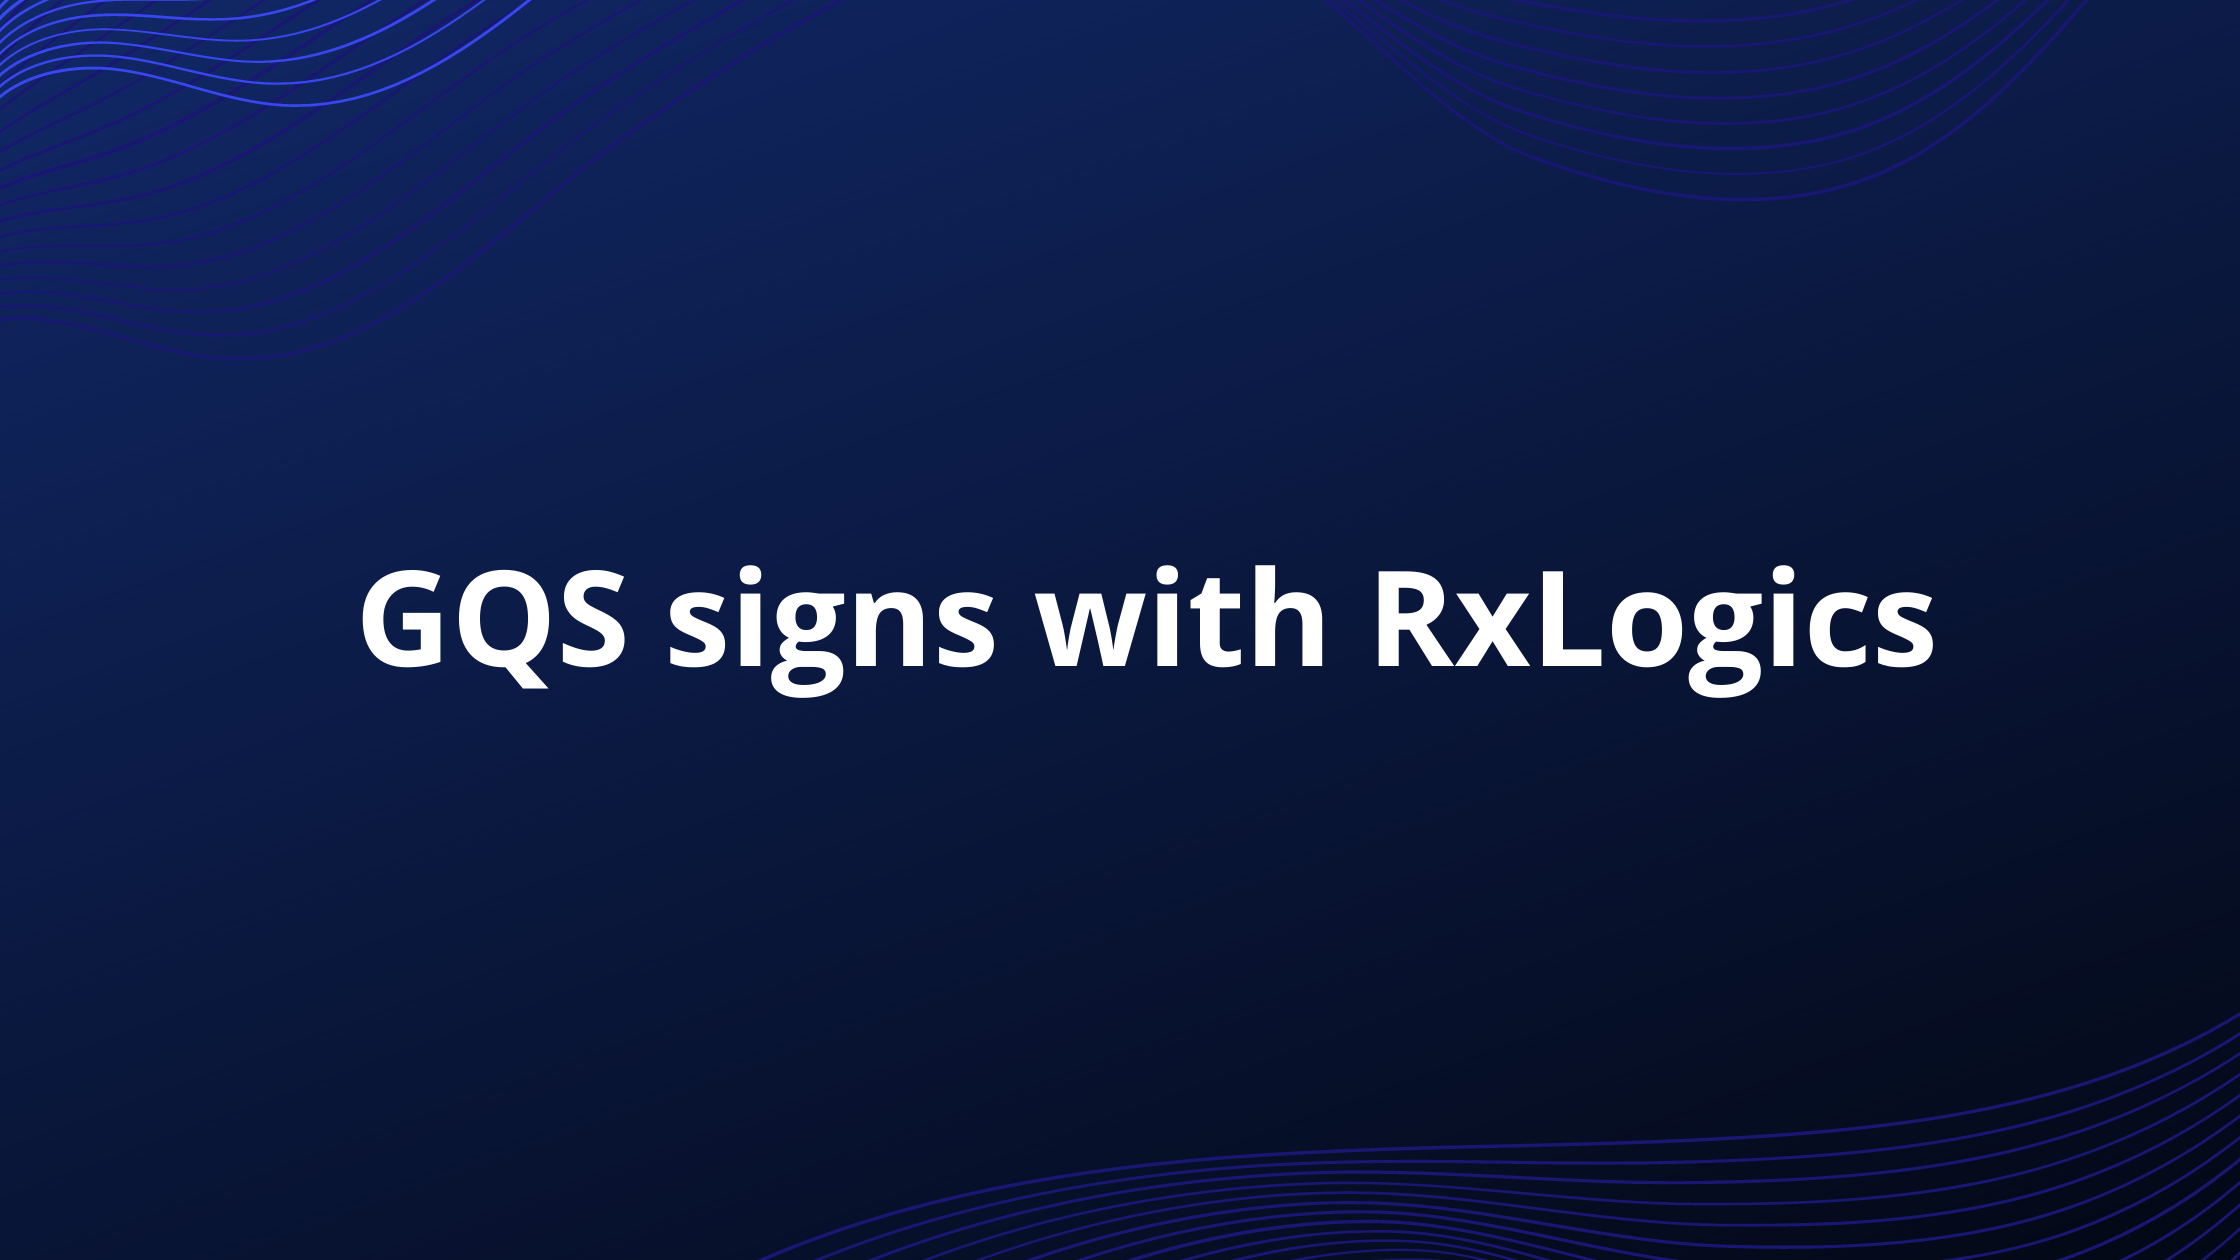 GQS signs with RxLogics large IT Company with its offices in US, India